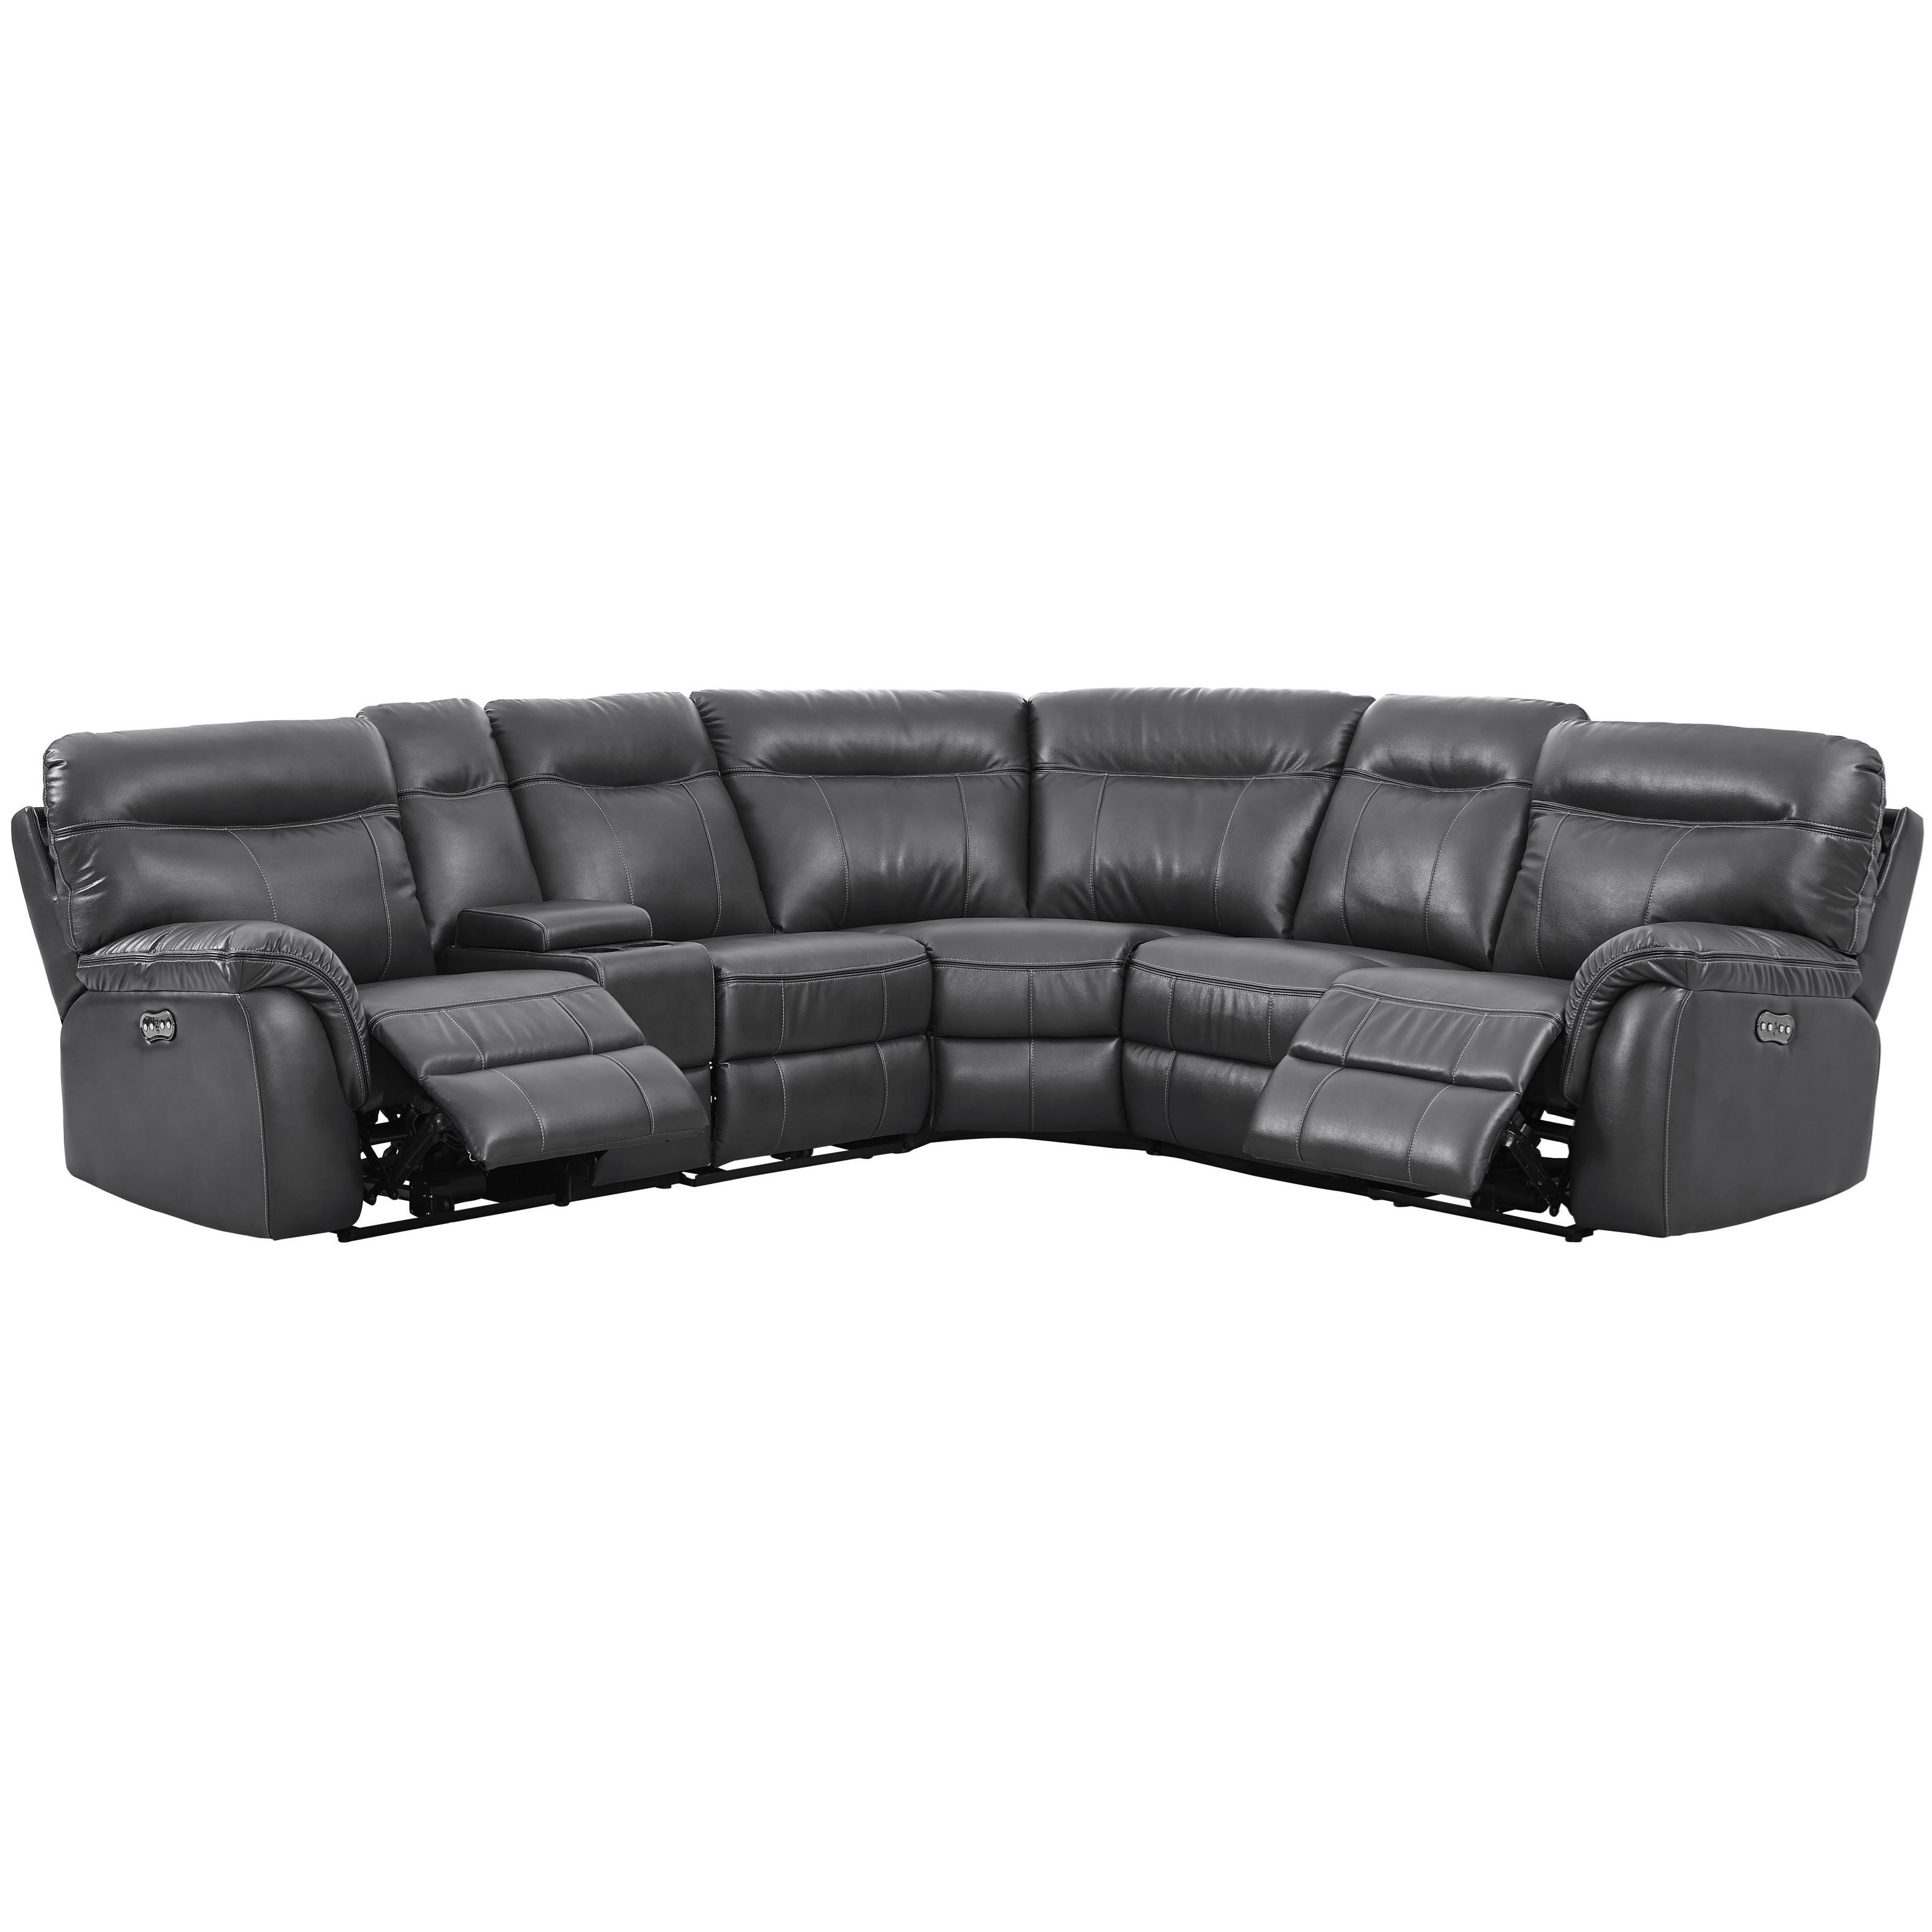 Atlas 5 Seat Power Sectional by New Classic at Carolina Direct